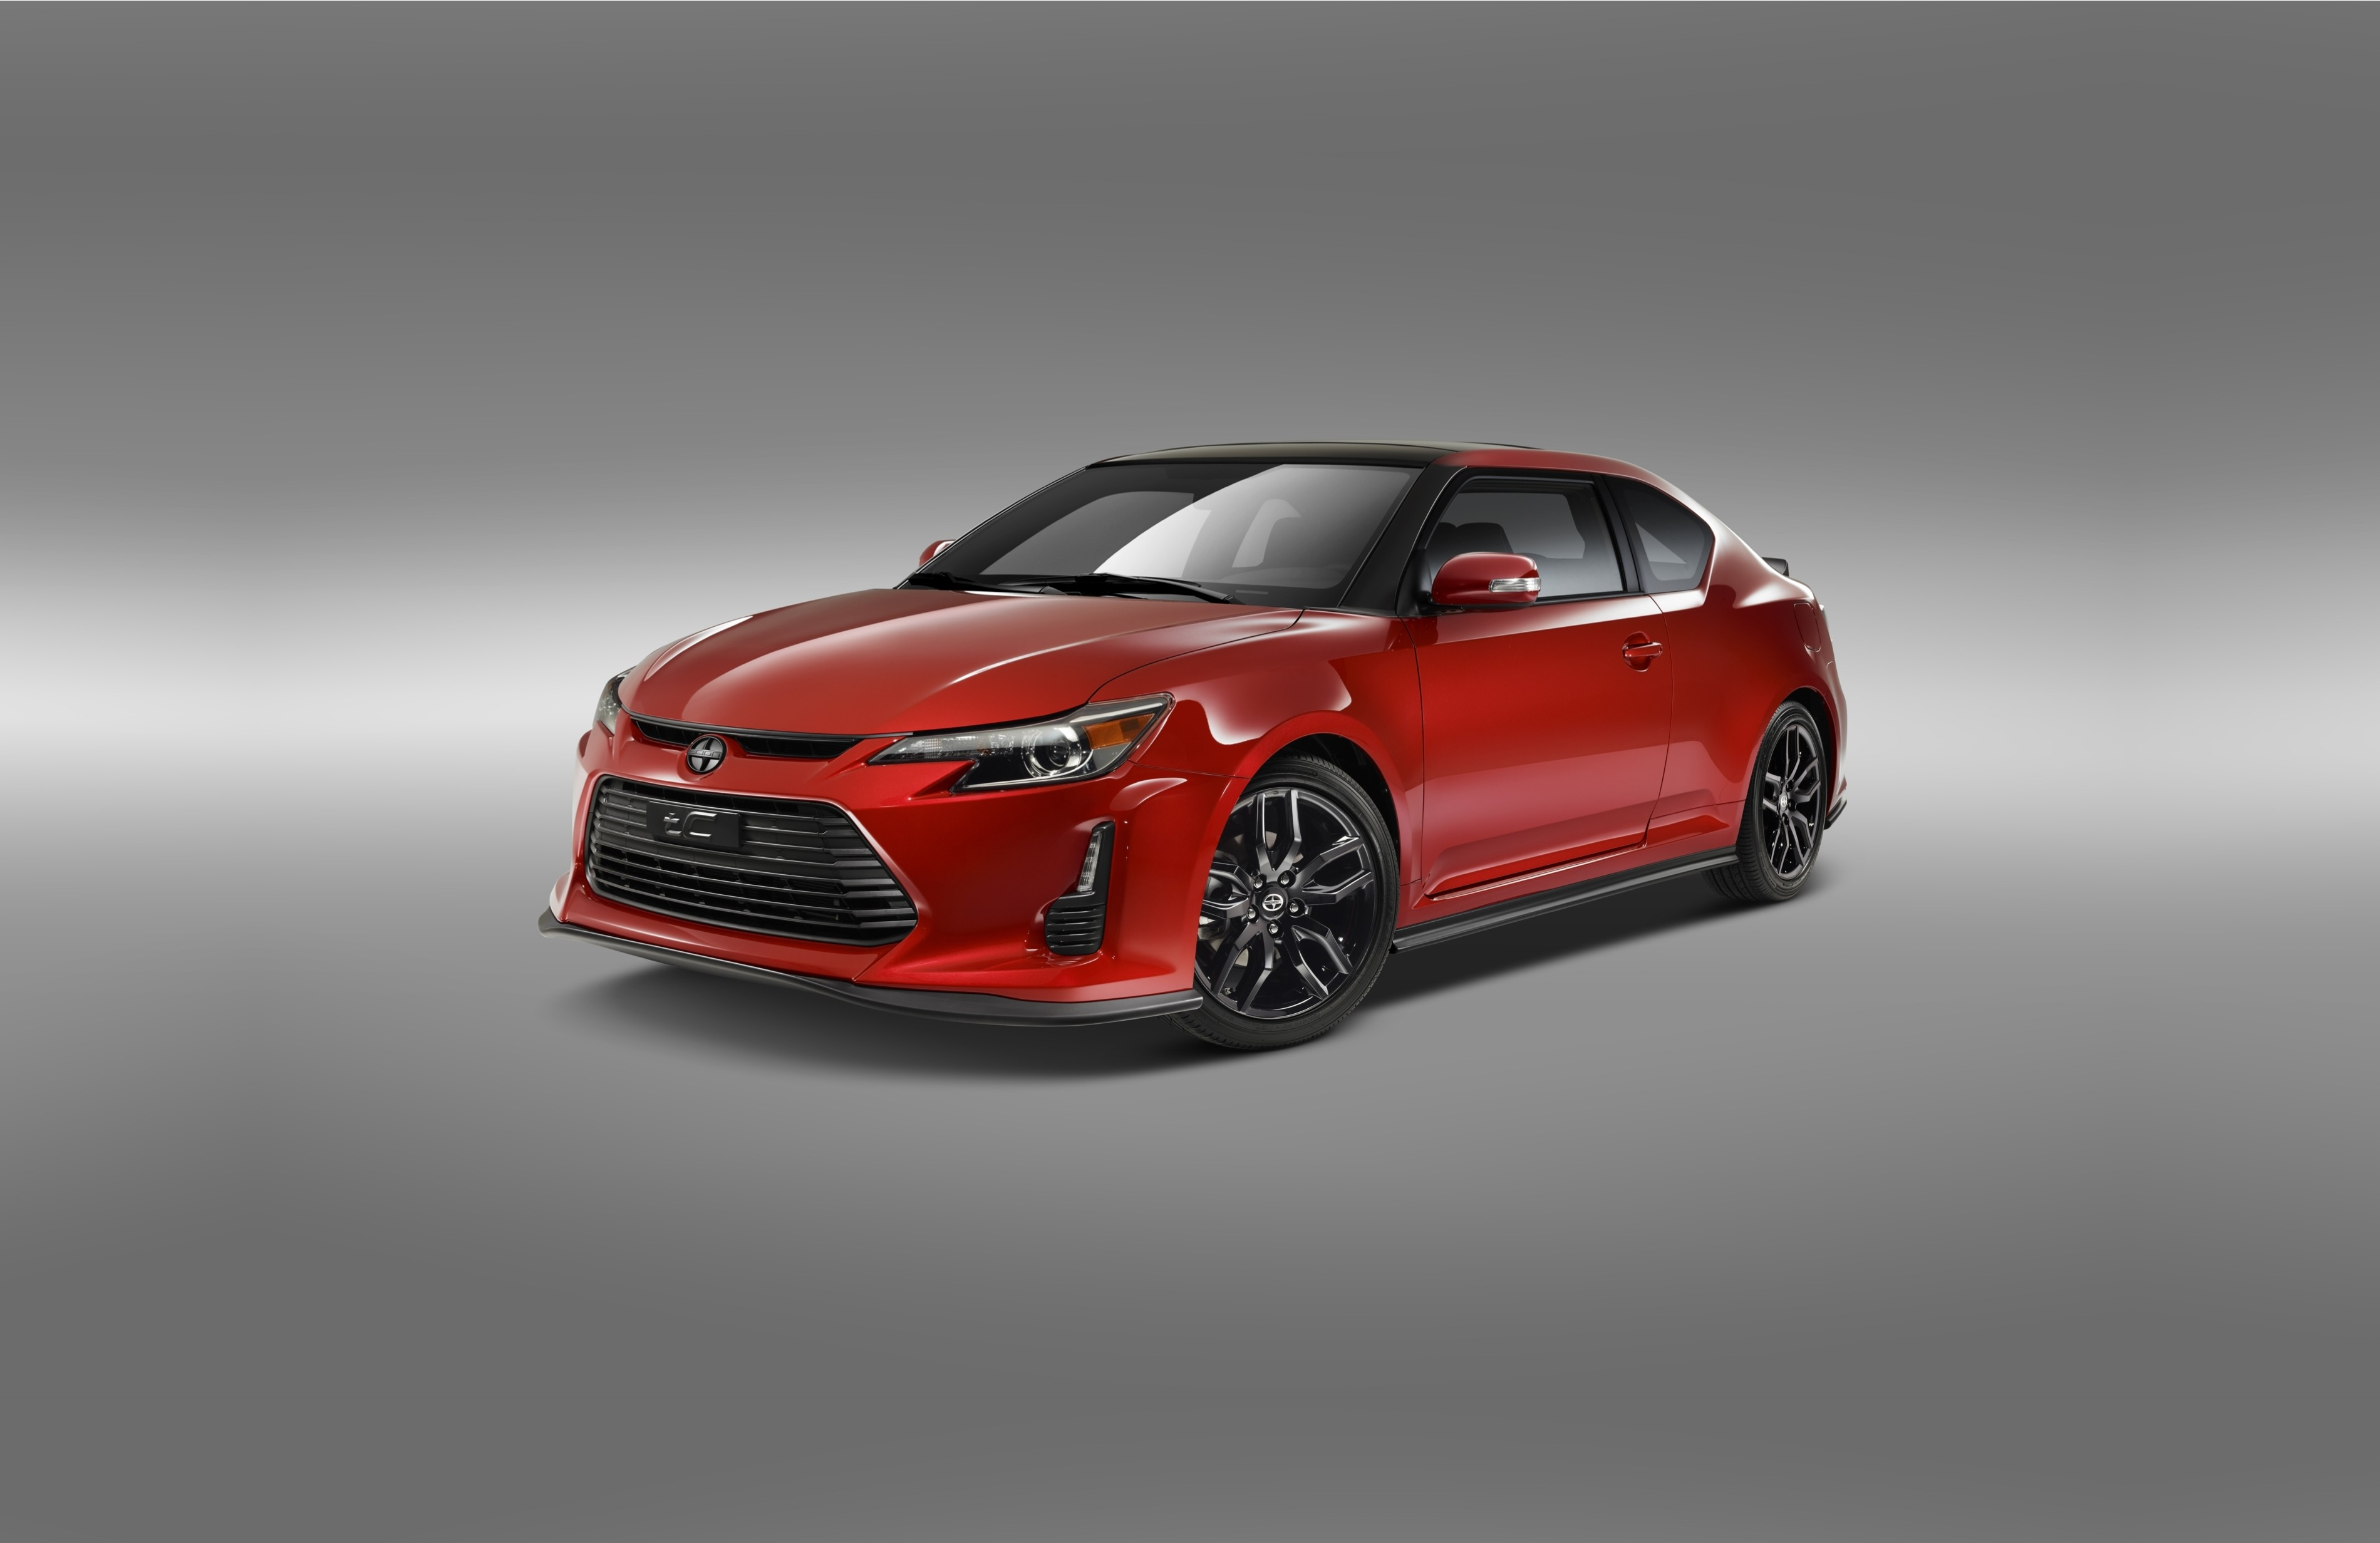 wallpaper scion tc release series 10 0 nyias 2016 red cars bikes 9695. Black Bedroom Furniture Sets. Home Design Ideas